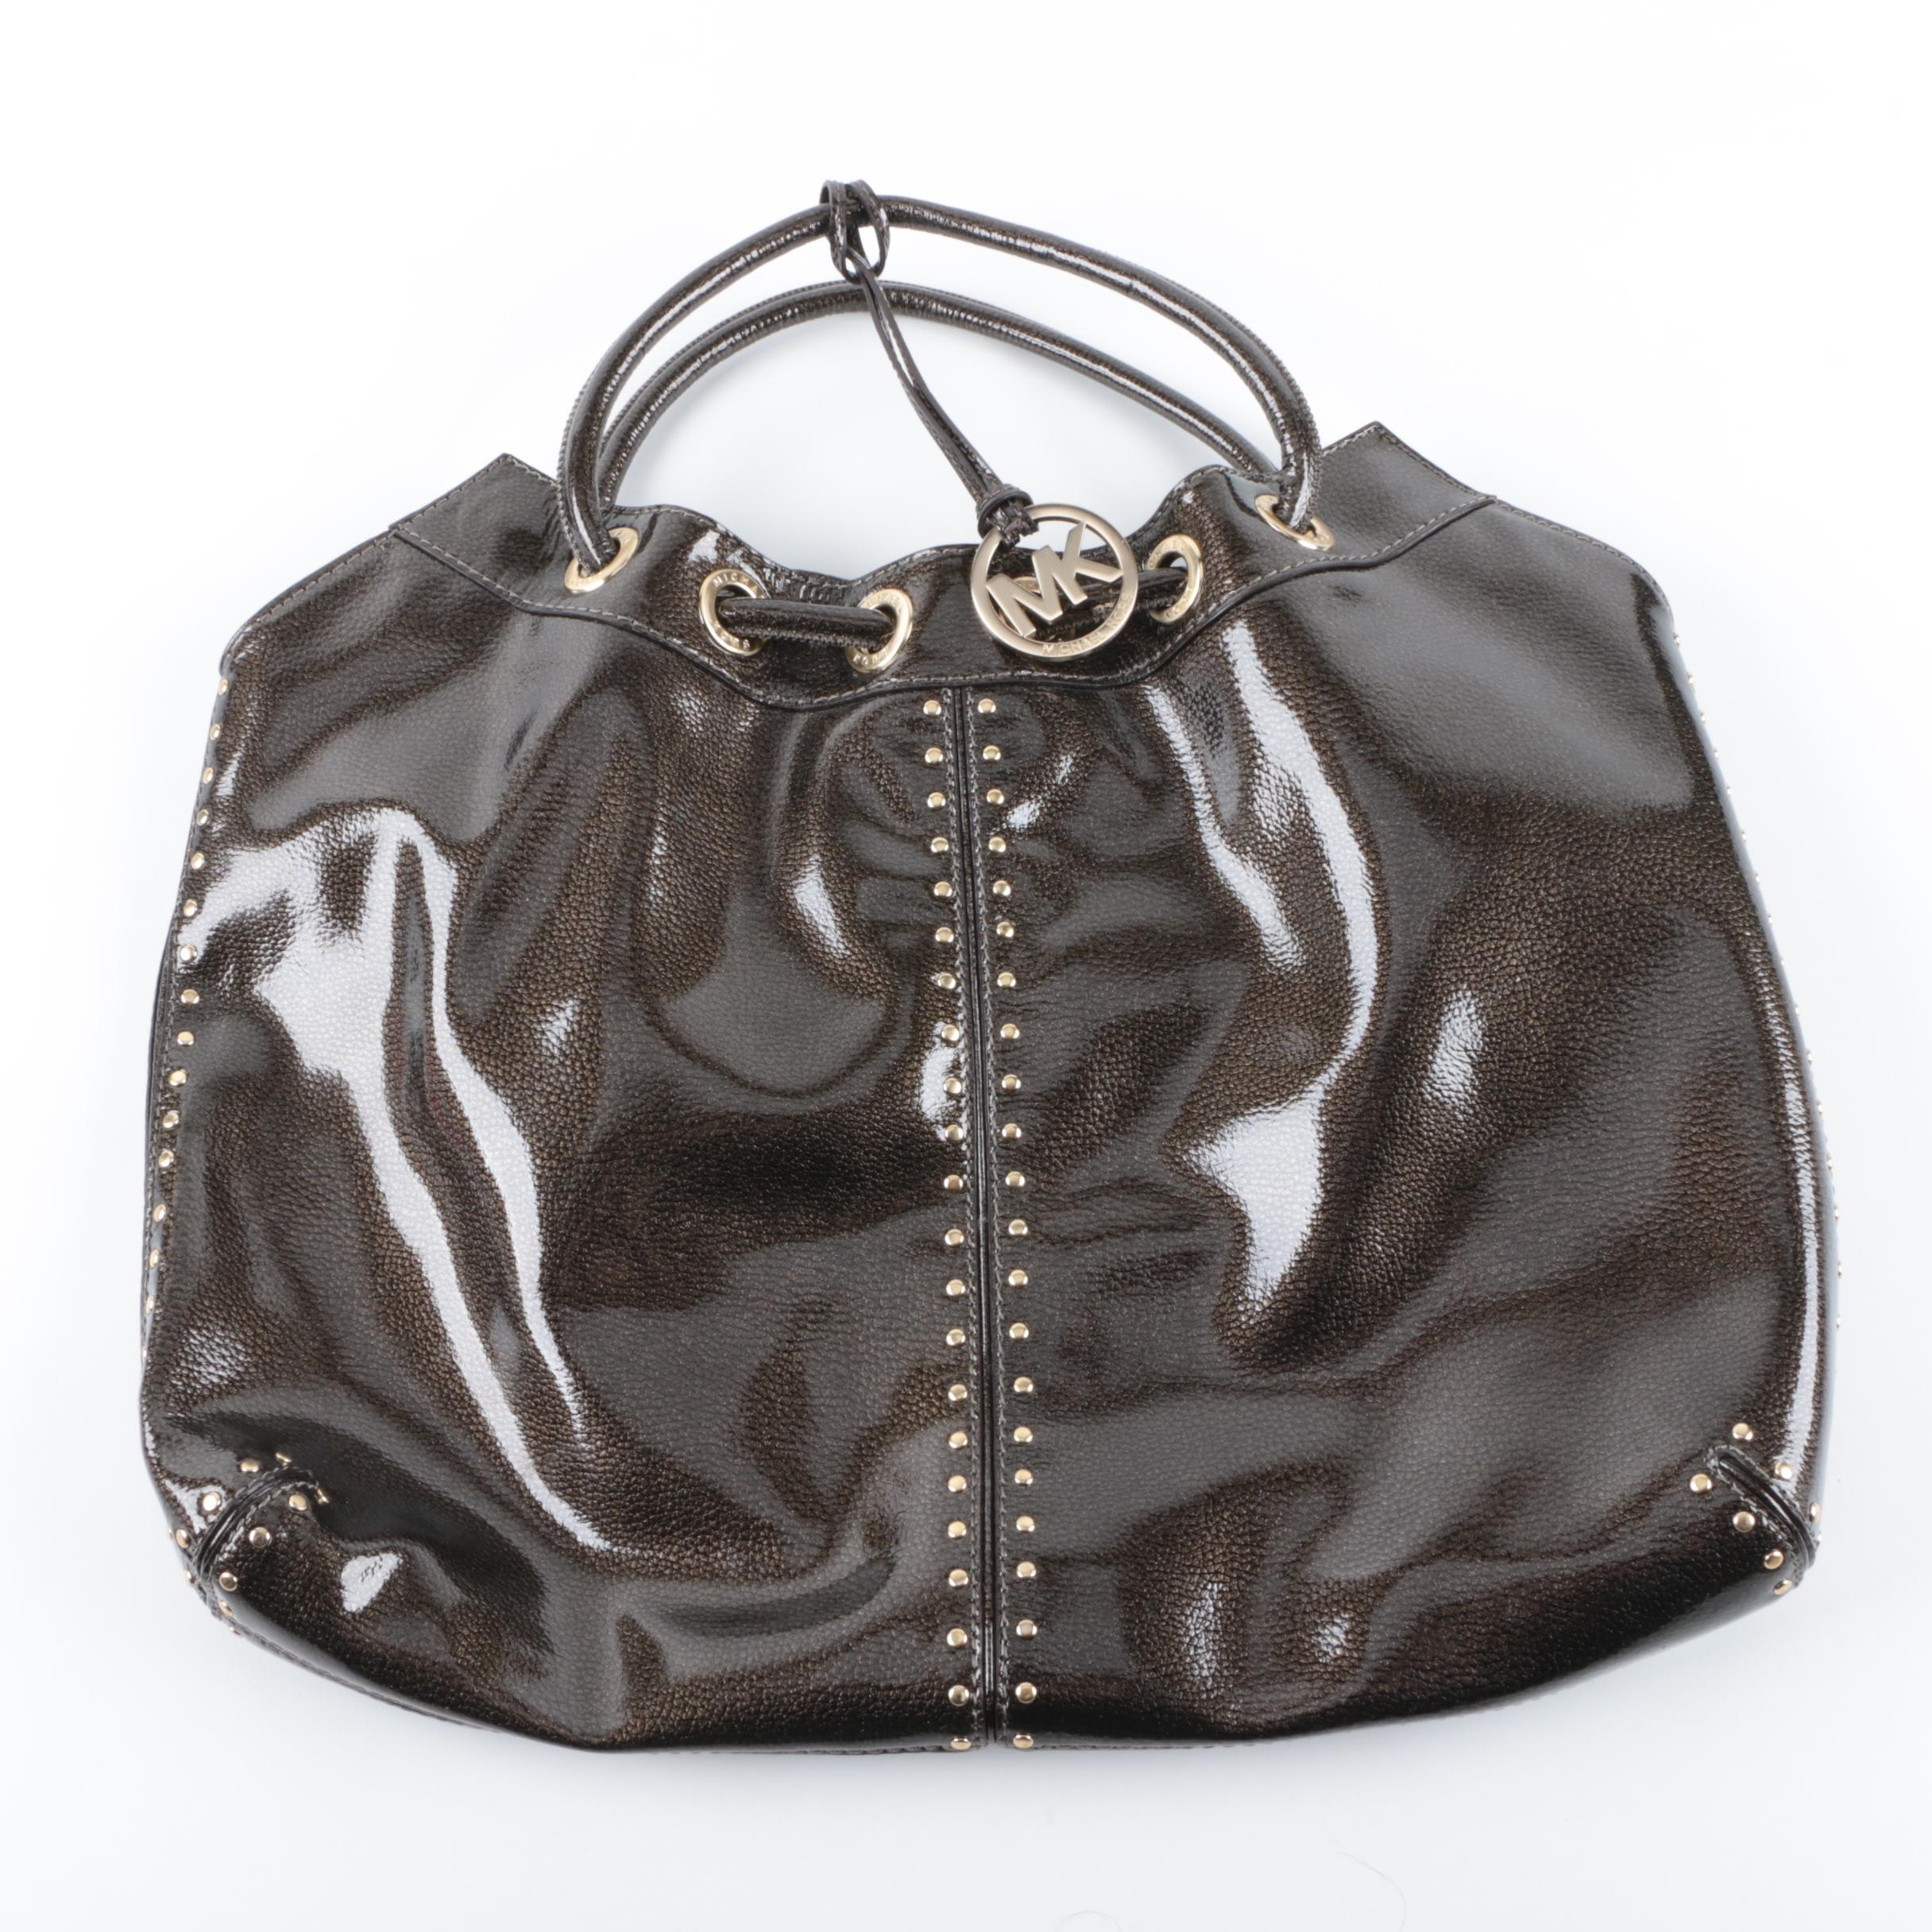 MICHAEL Michael Kors Brown Patent Leather Tote